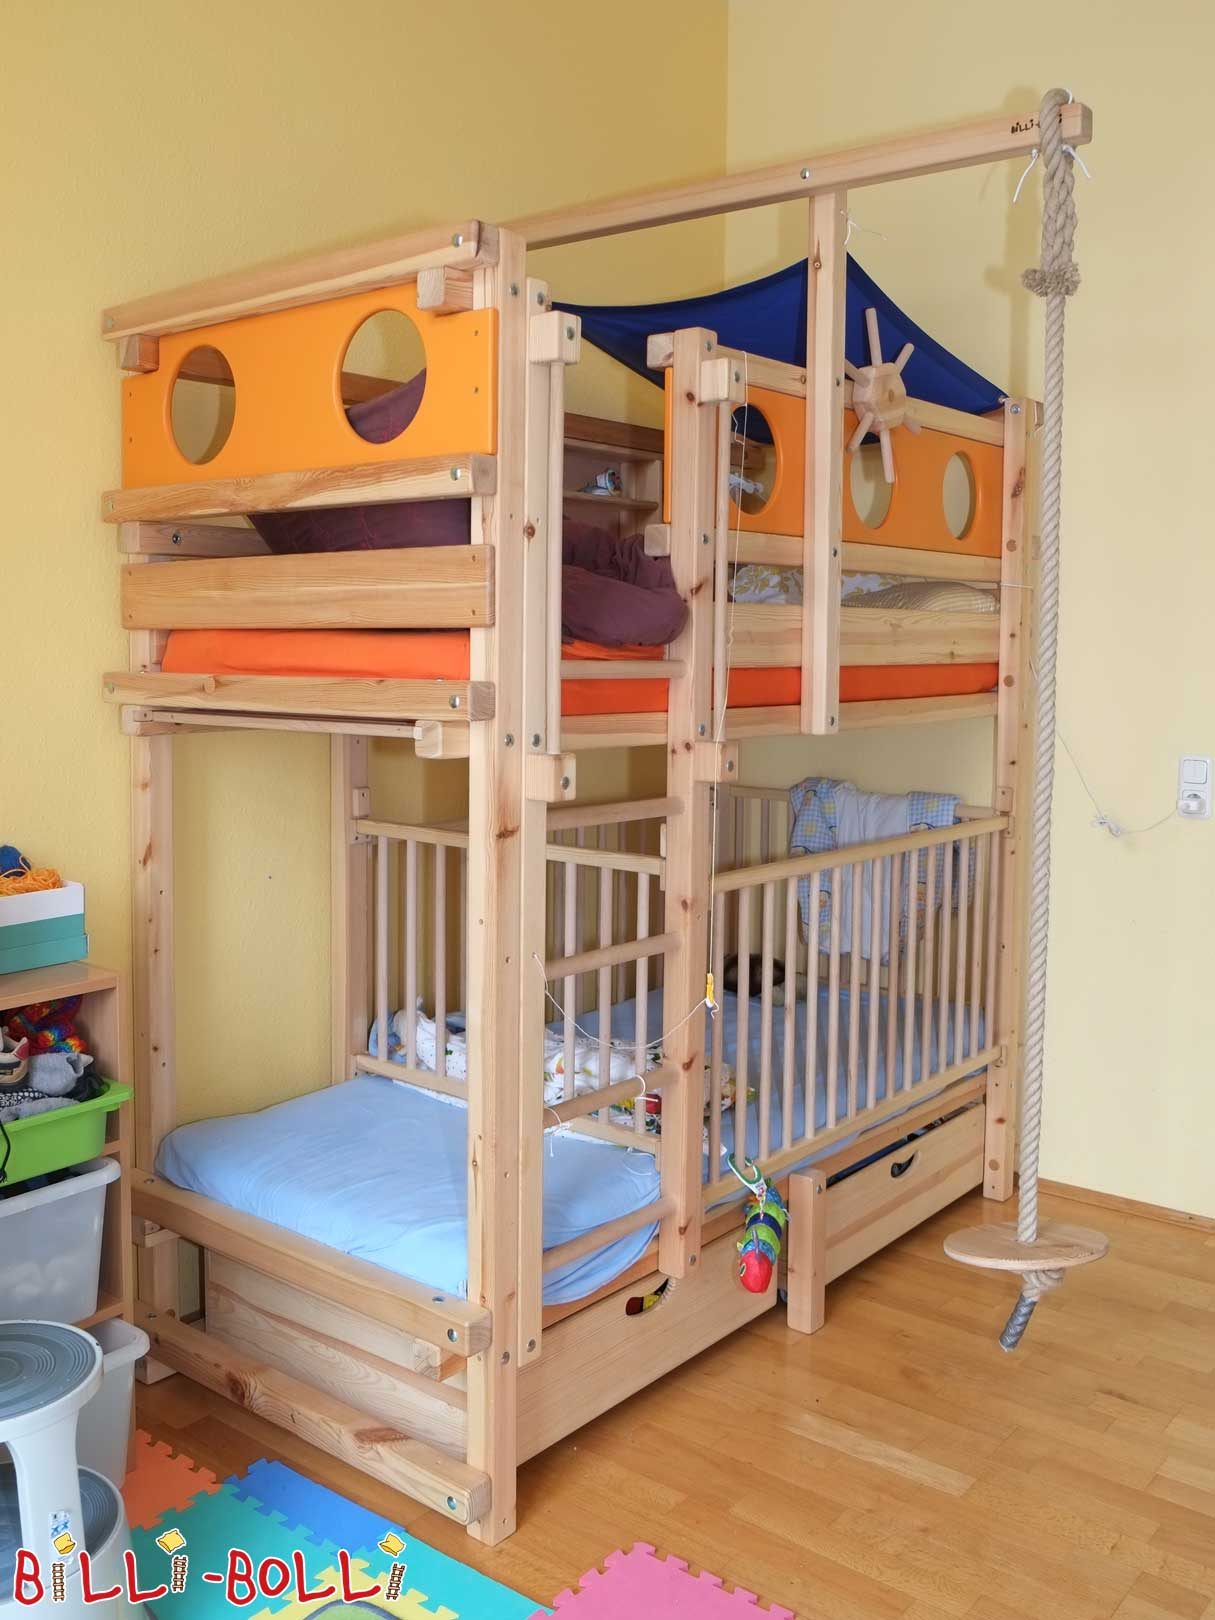 bunk bed billi bolli kids furniture. Black Bedroom Furniture Sets. Home Design Ideas